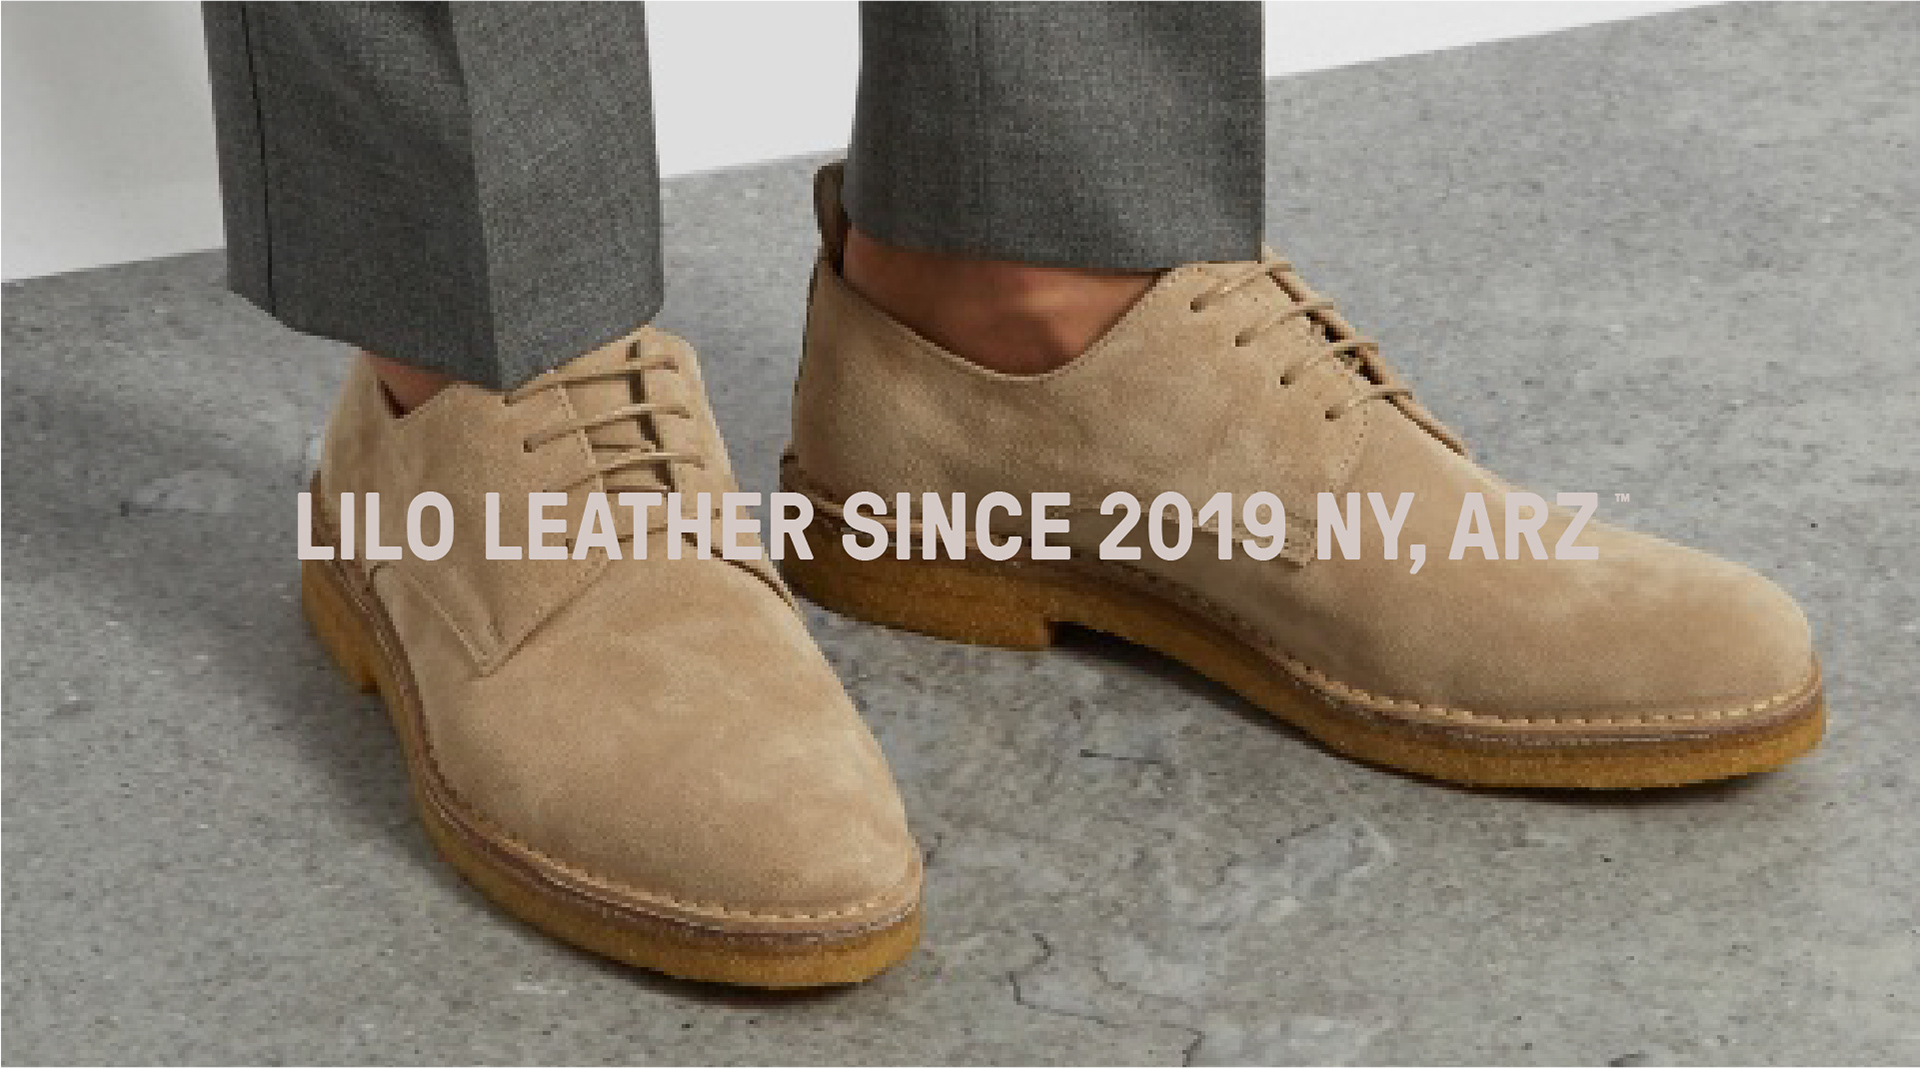 Branding for Lilo™, a brand for men's shoes 100% recycled leather